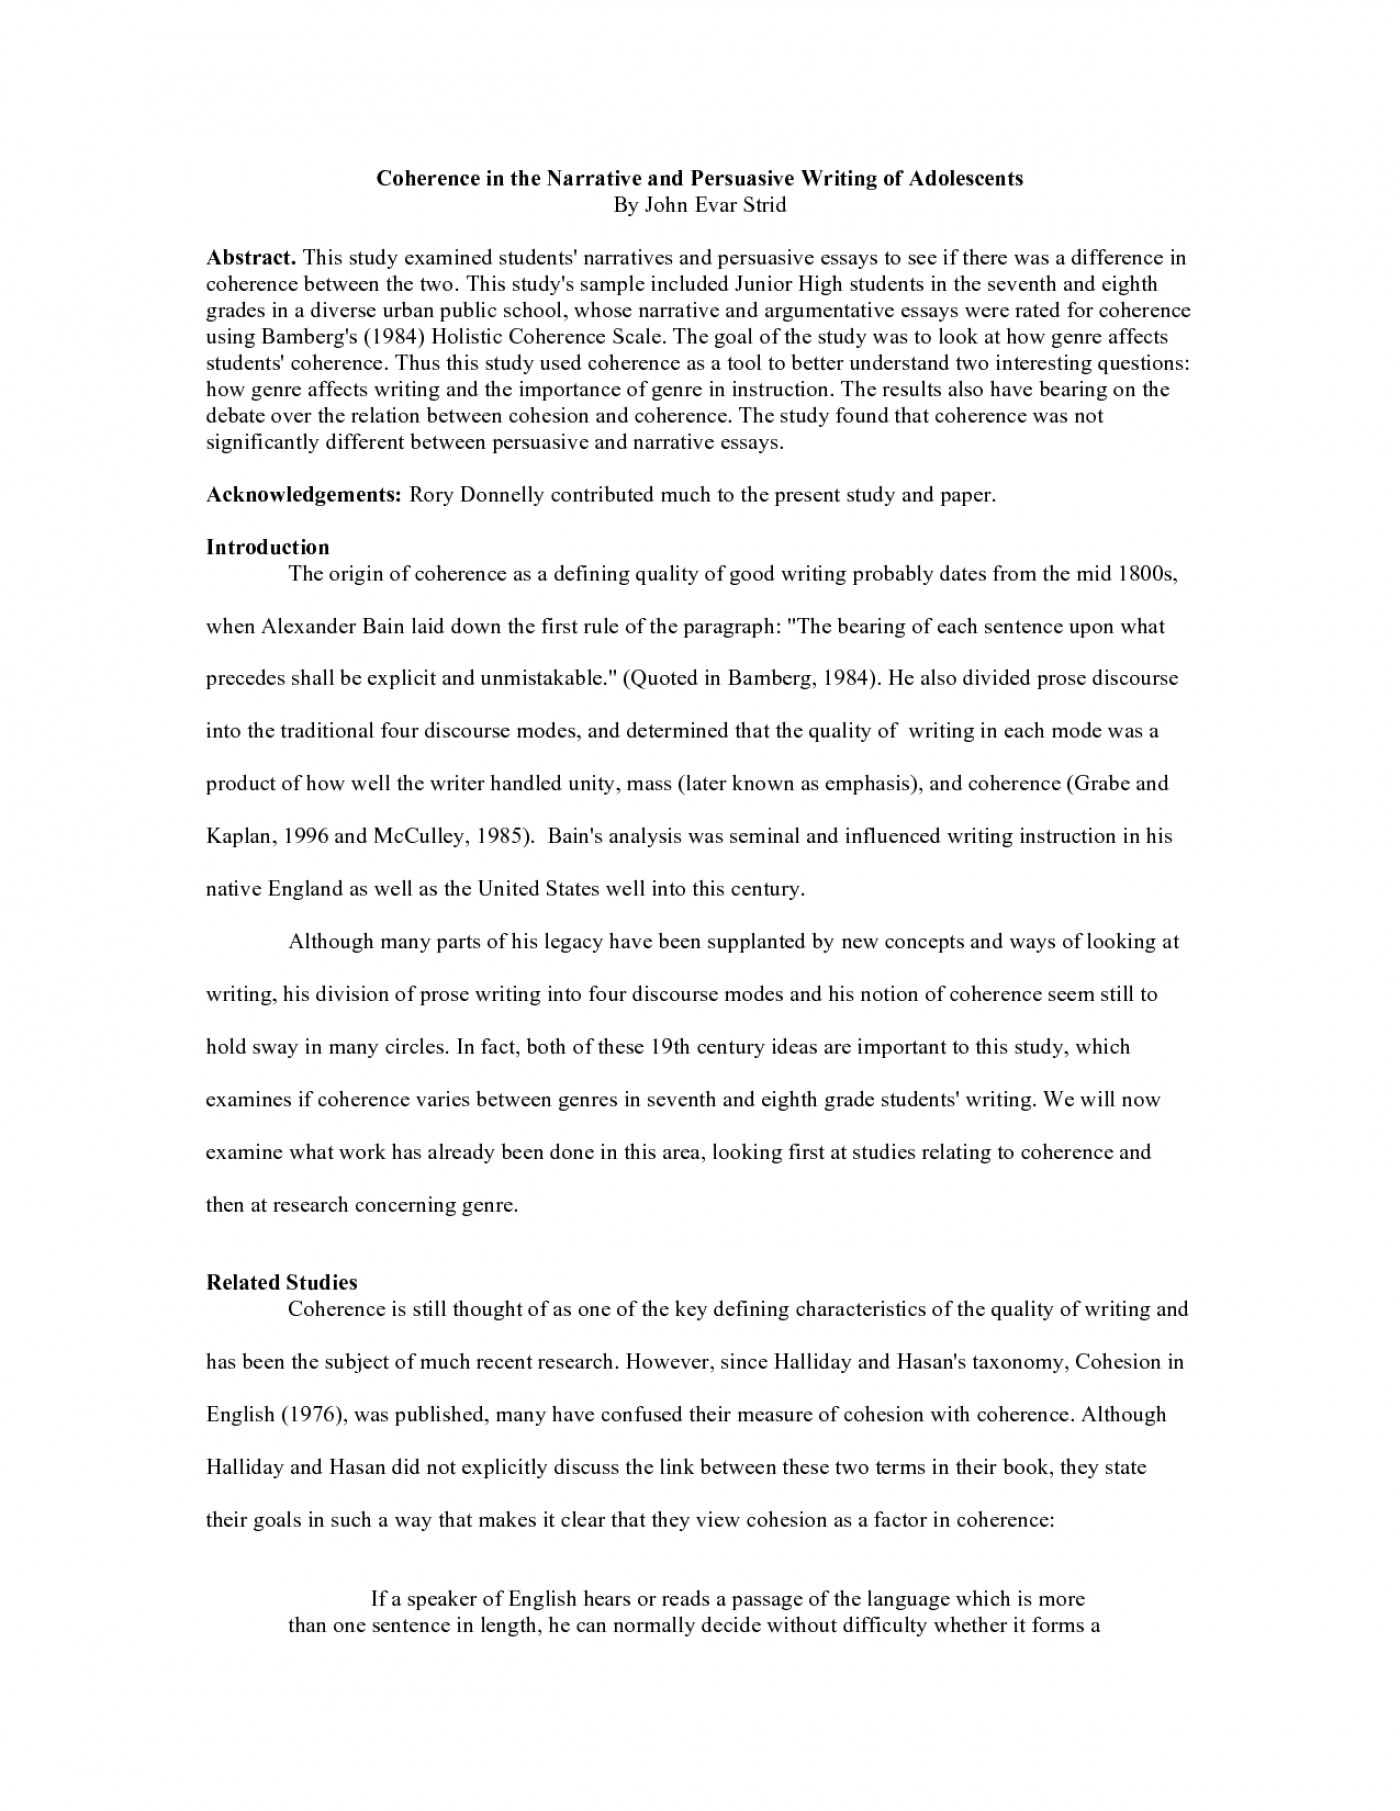 Cheap admission essay editing site for university